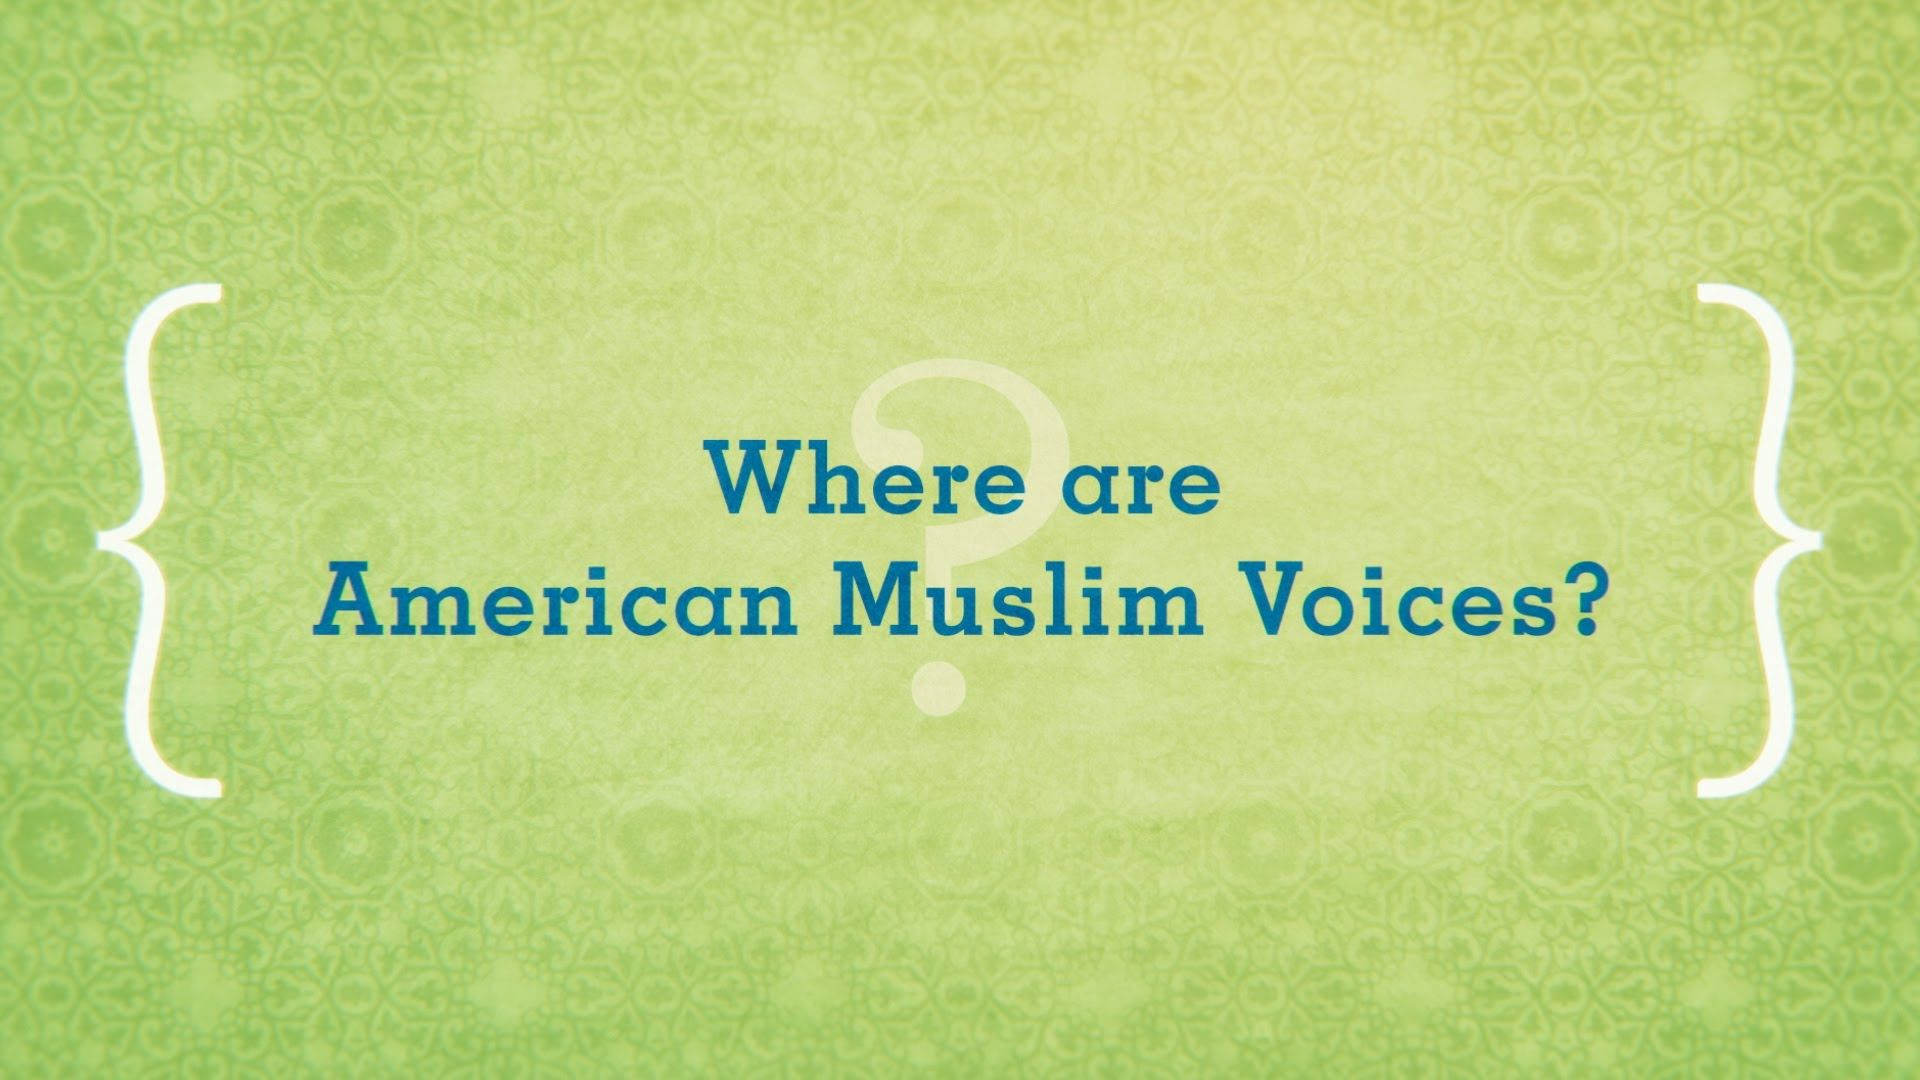 American Muslims - Chapter 2: Where Are American Muslim Voices?